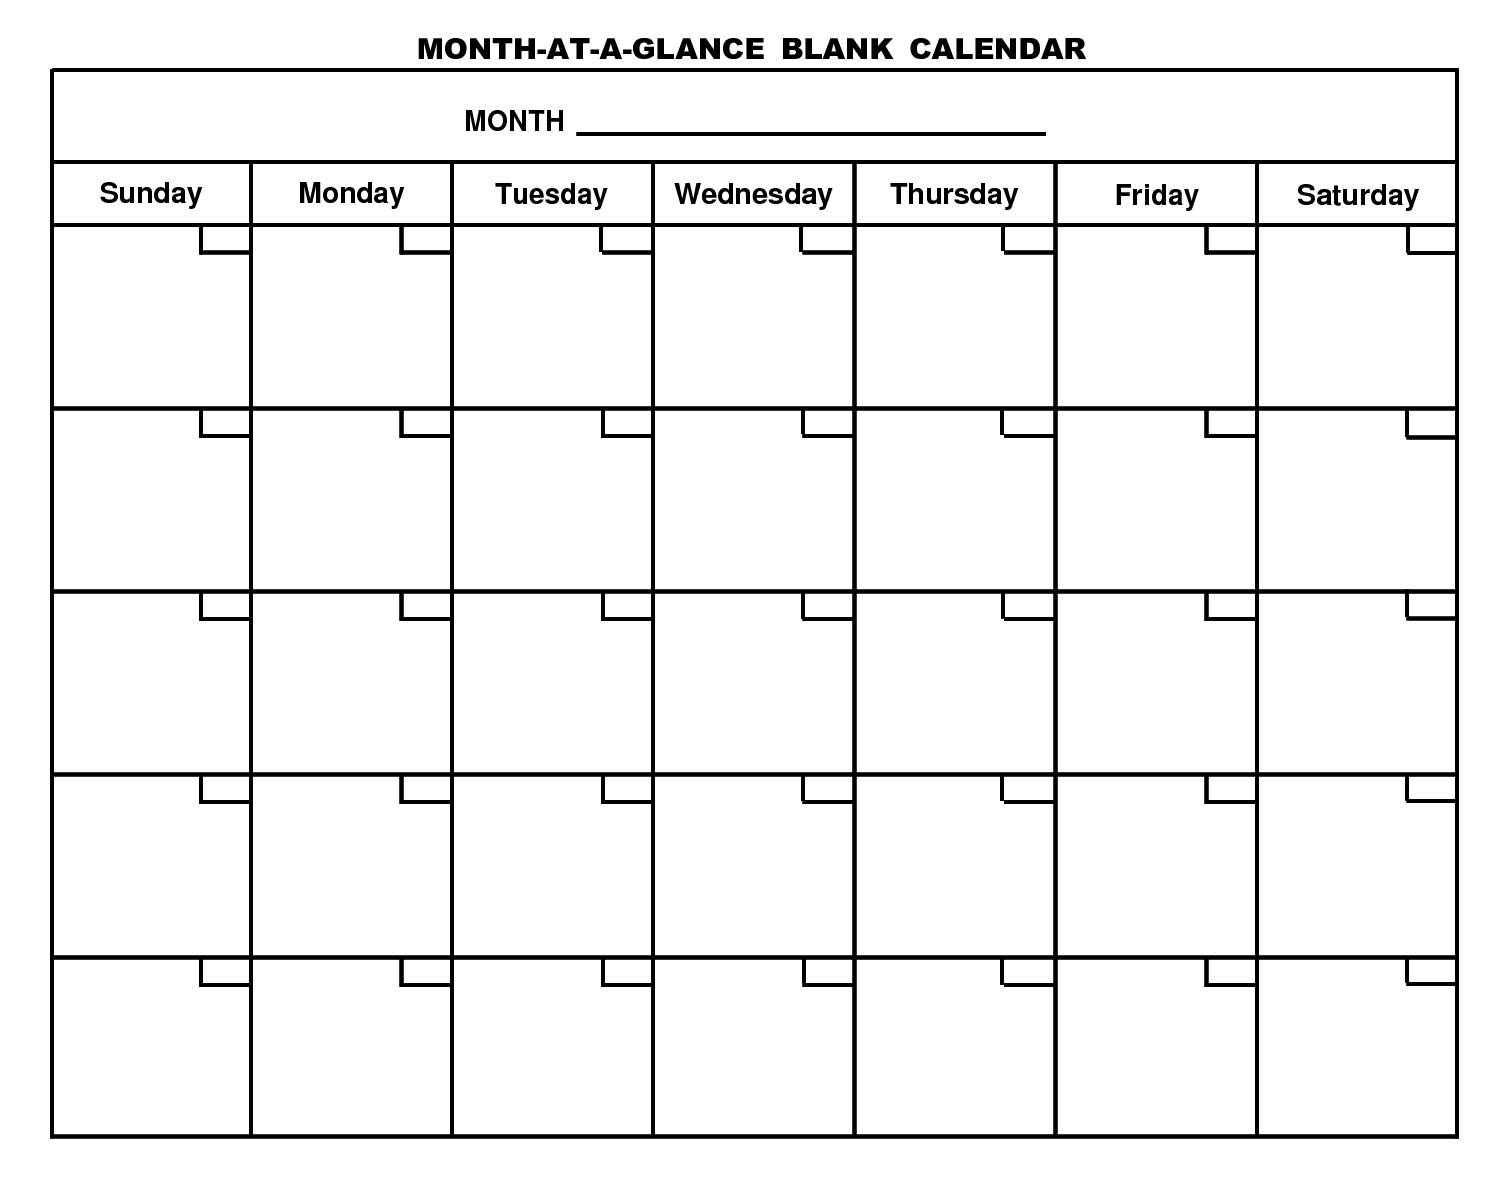 Pin By Stacy Tangren On Work | Blank Monthly Calendar-Month At A Glance Blank Calendar Template